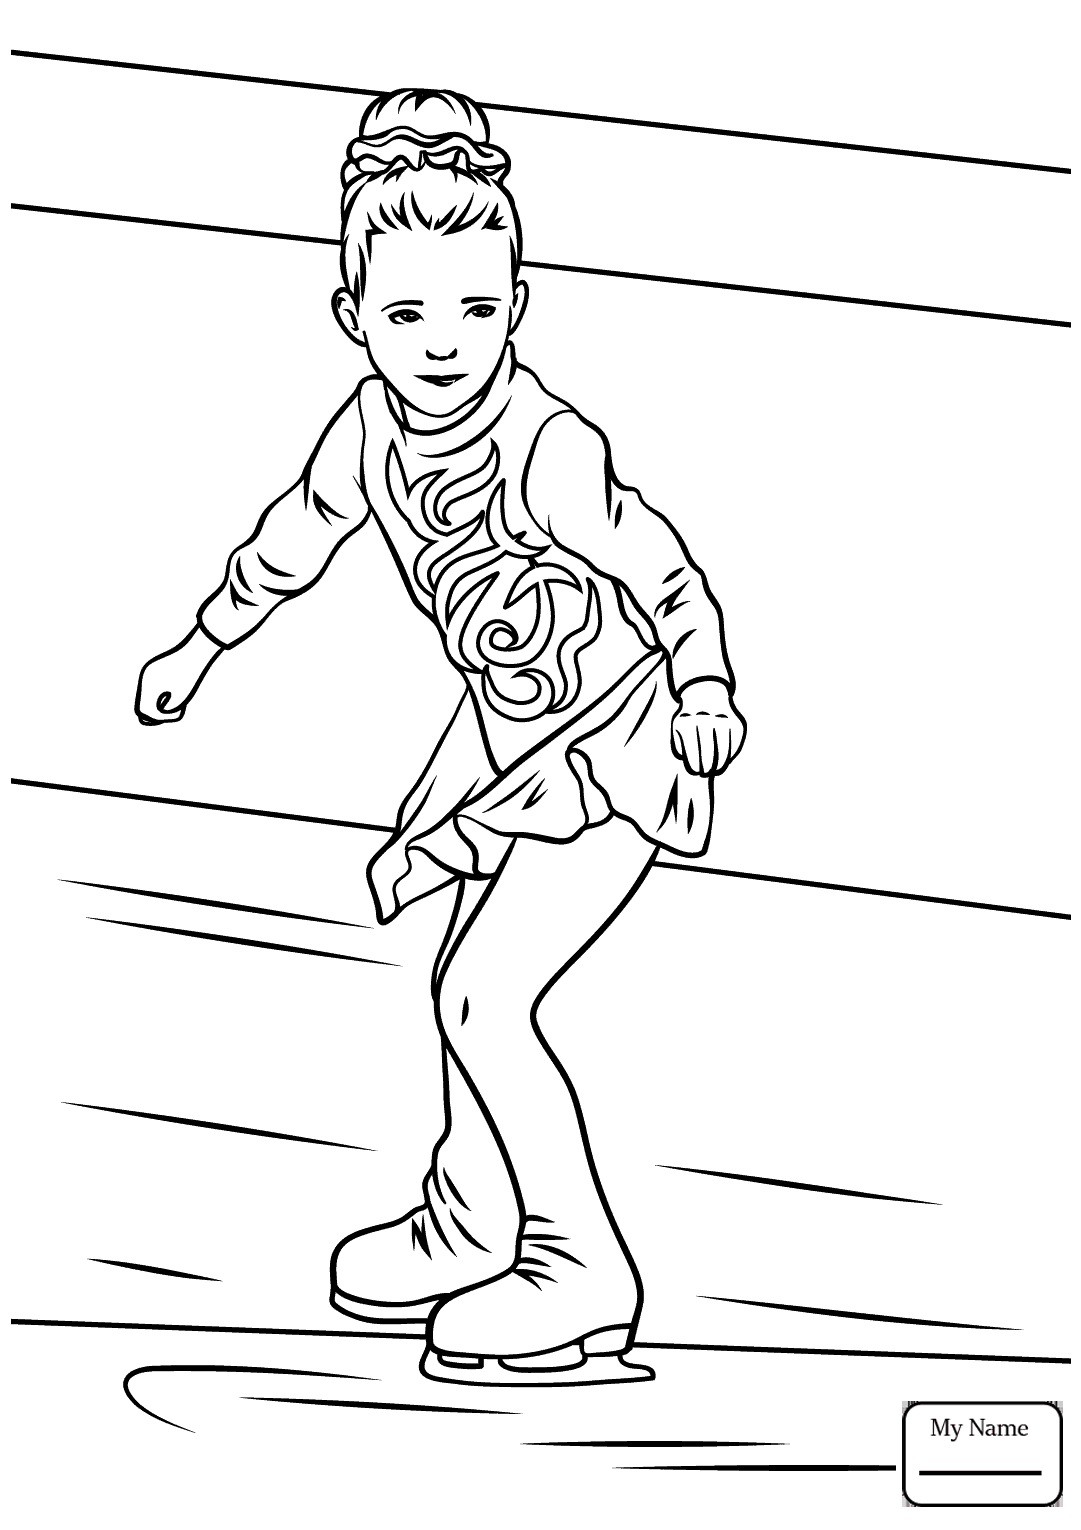 1081x1530 Coloring Pages Ice Skating Boy Ice Skater Activities